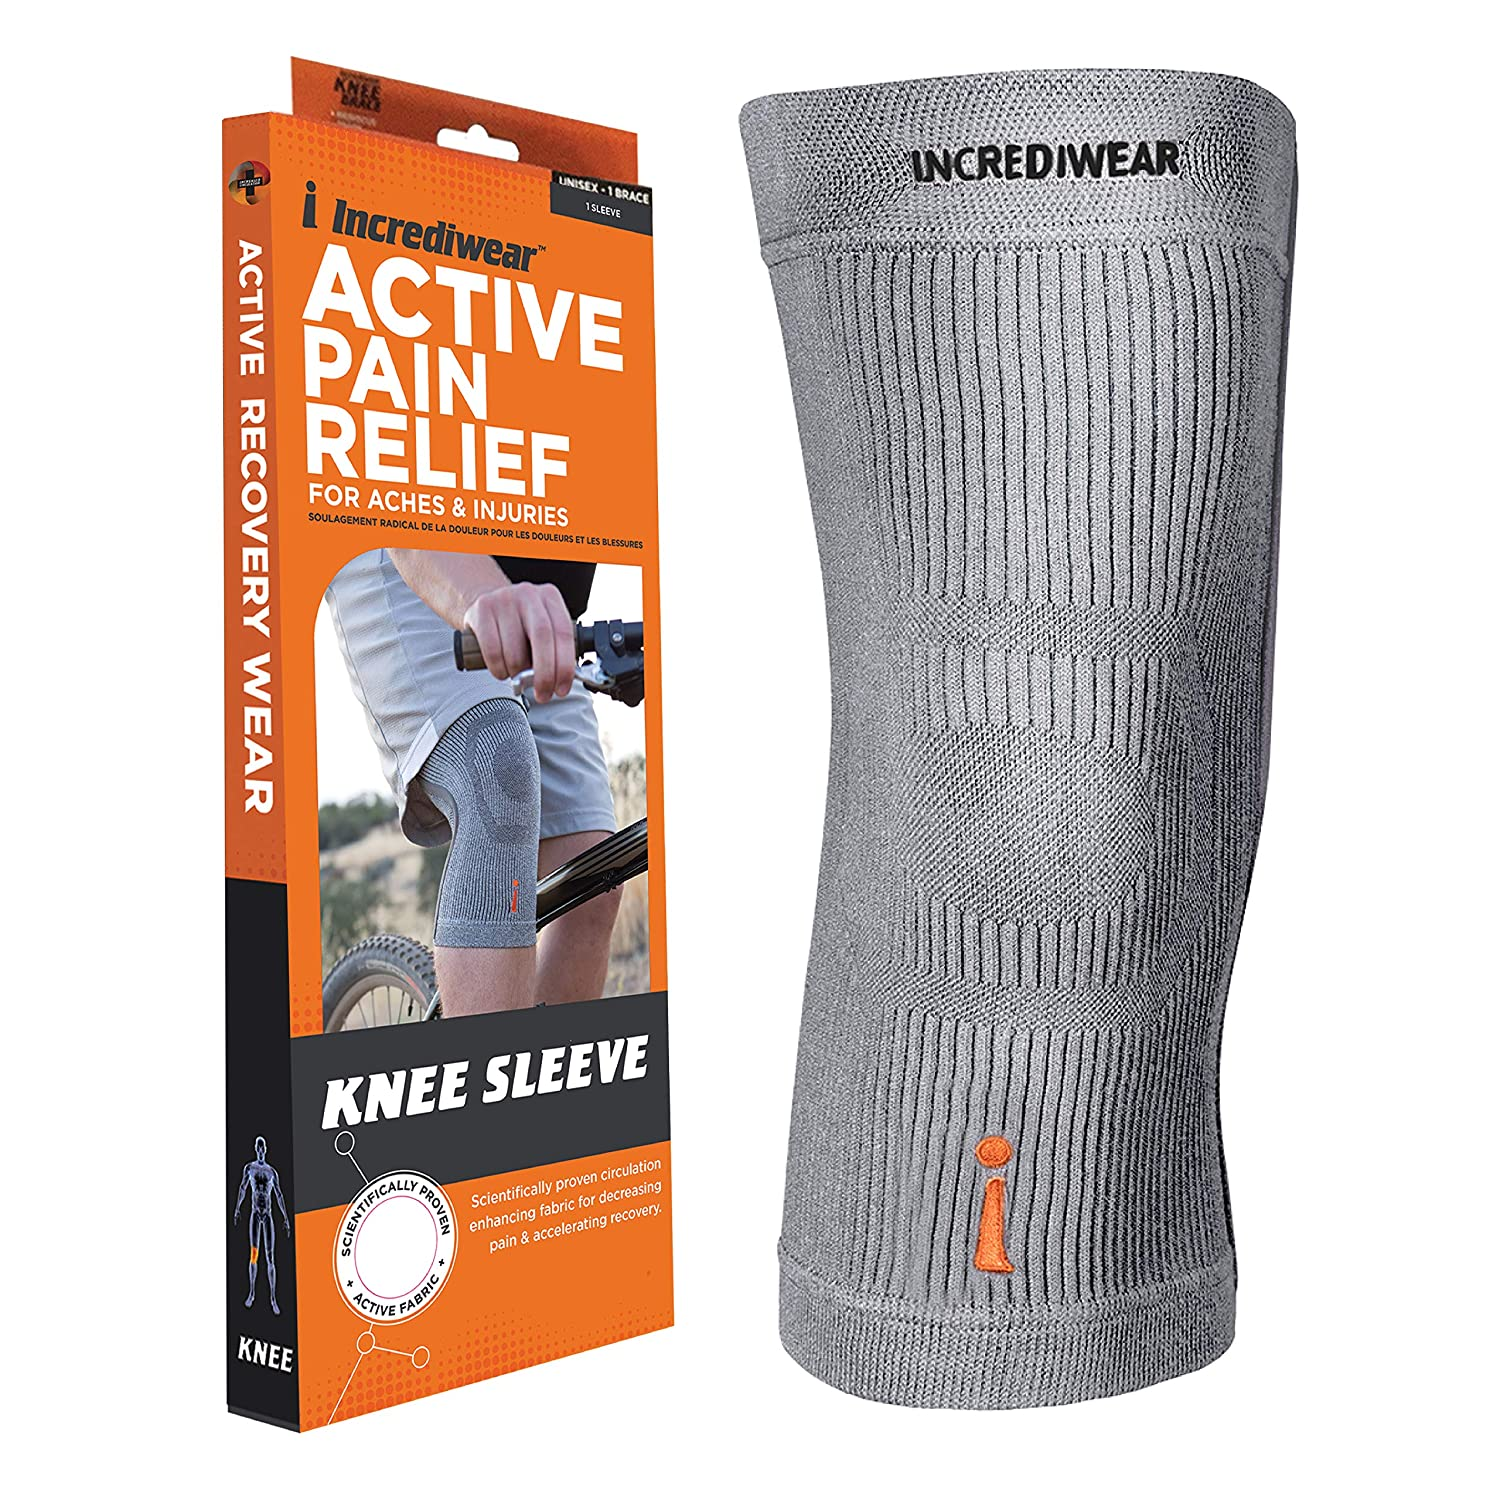 Incrediwear Our shop OFFers the best service Knee Sleeve – Brace High material Joint Pain Relief for